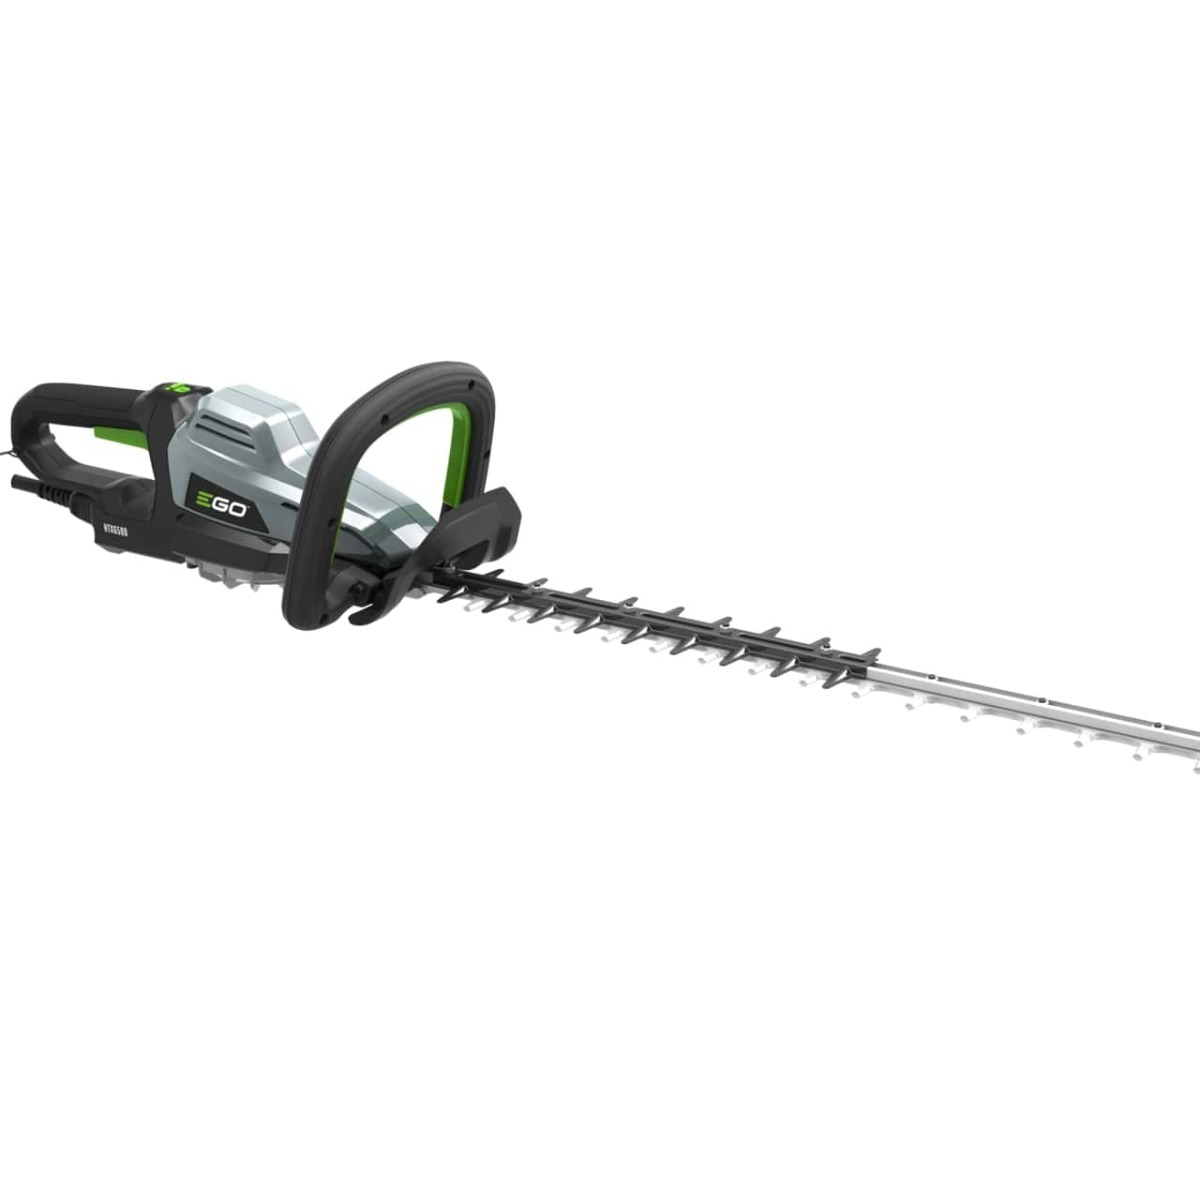 EGO Power Products HTX6500 56v Commercial Hedge Trimmer 65cm Blade, Body Only